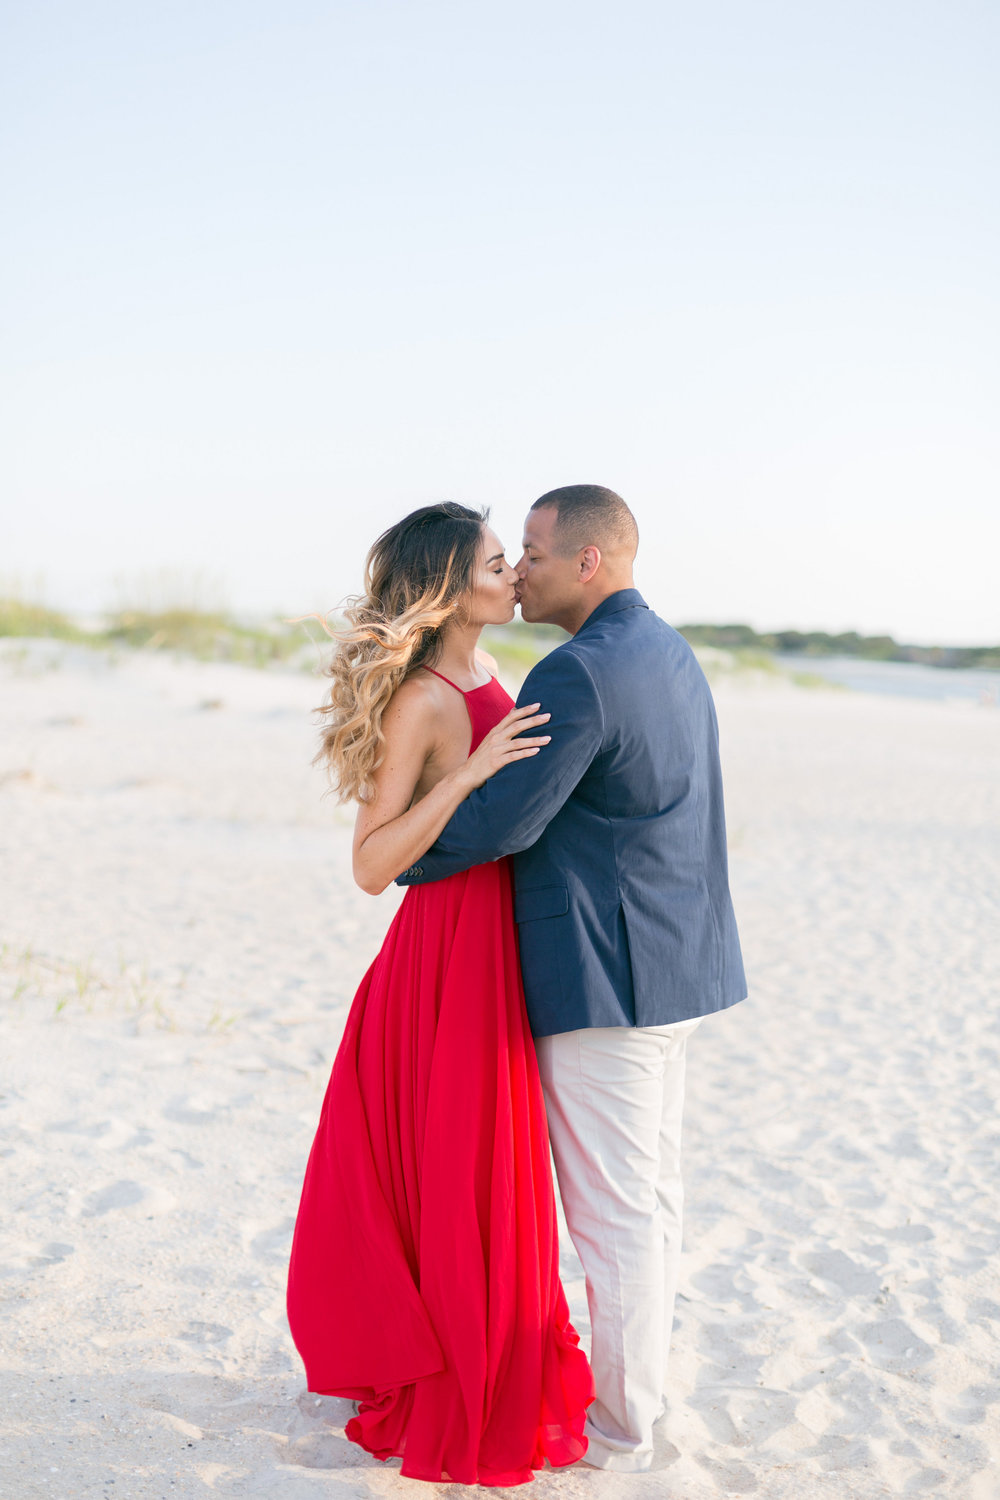 Chris + Felisha's Evening engagement in Myrtle Beach, South Carolina